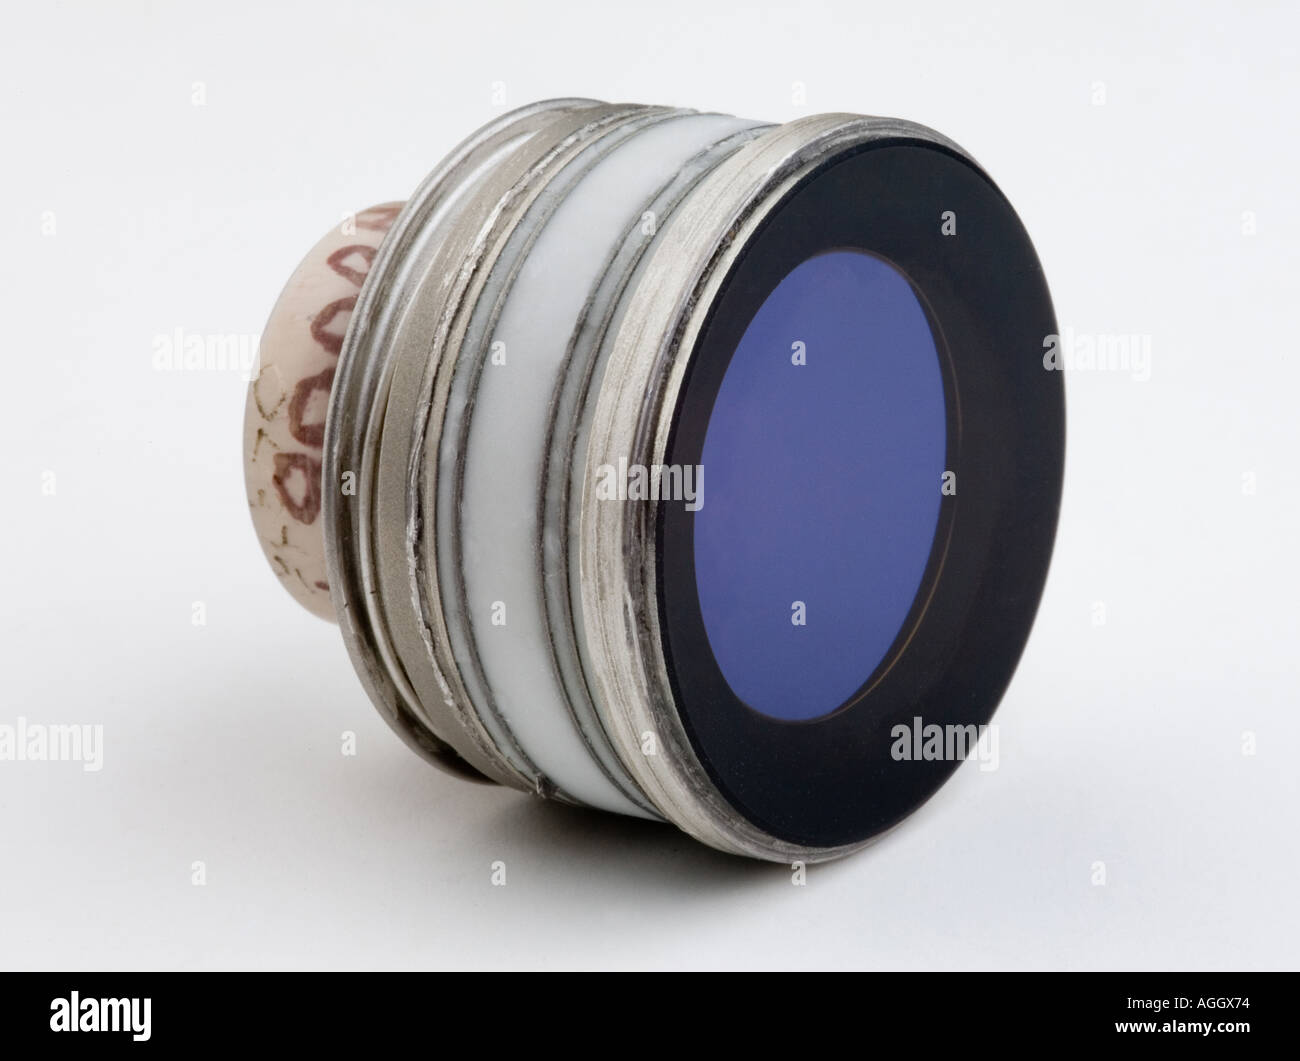 An image intensifier tube, 3rd generation design, the main component for night vision scopes weapon sights and goggles - Stock Image